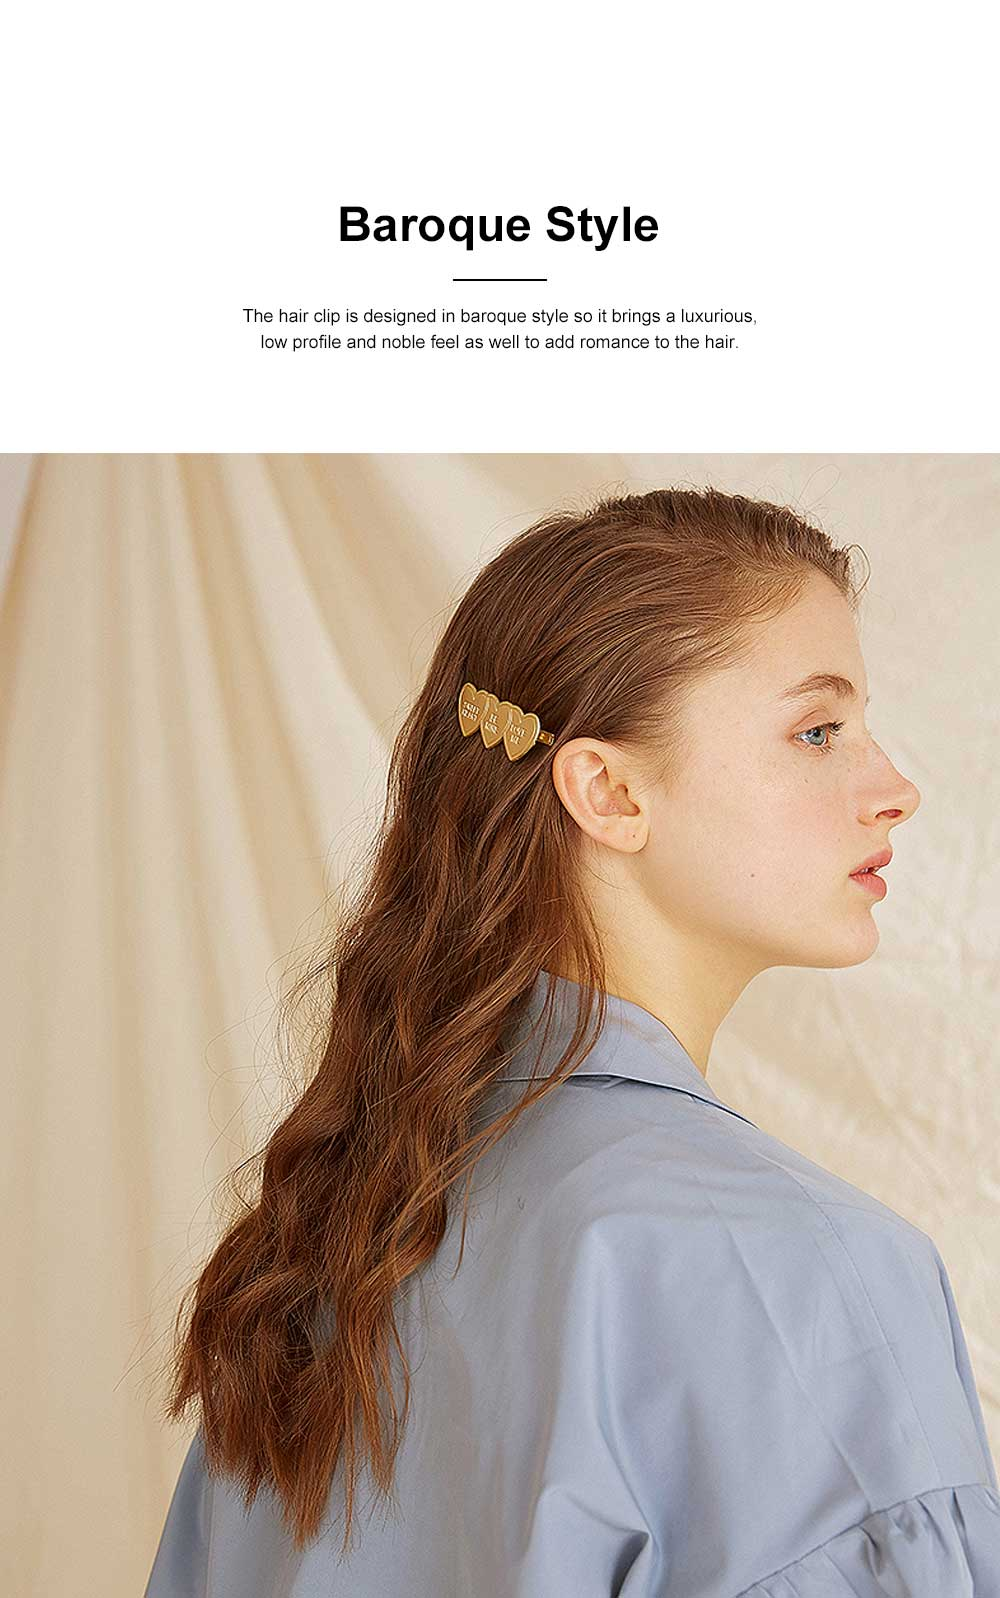 Baroque Hair Clip for Girls Gold-plated Alloy Bobby Pin Baroque Hair Dresses Retro I-shape Hairpin Star-like Side Clip 2